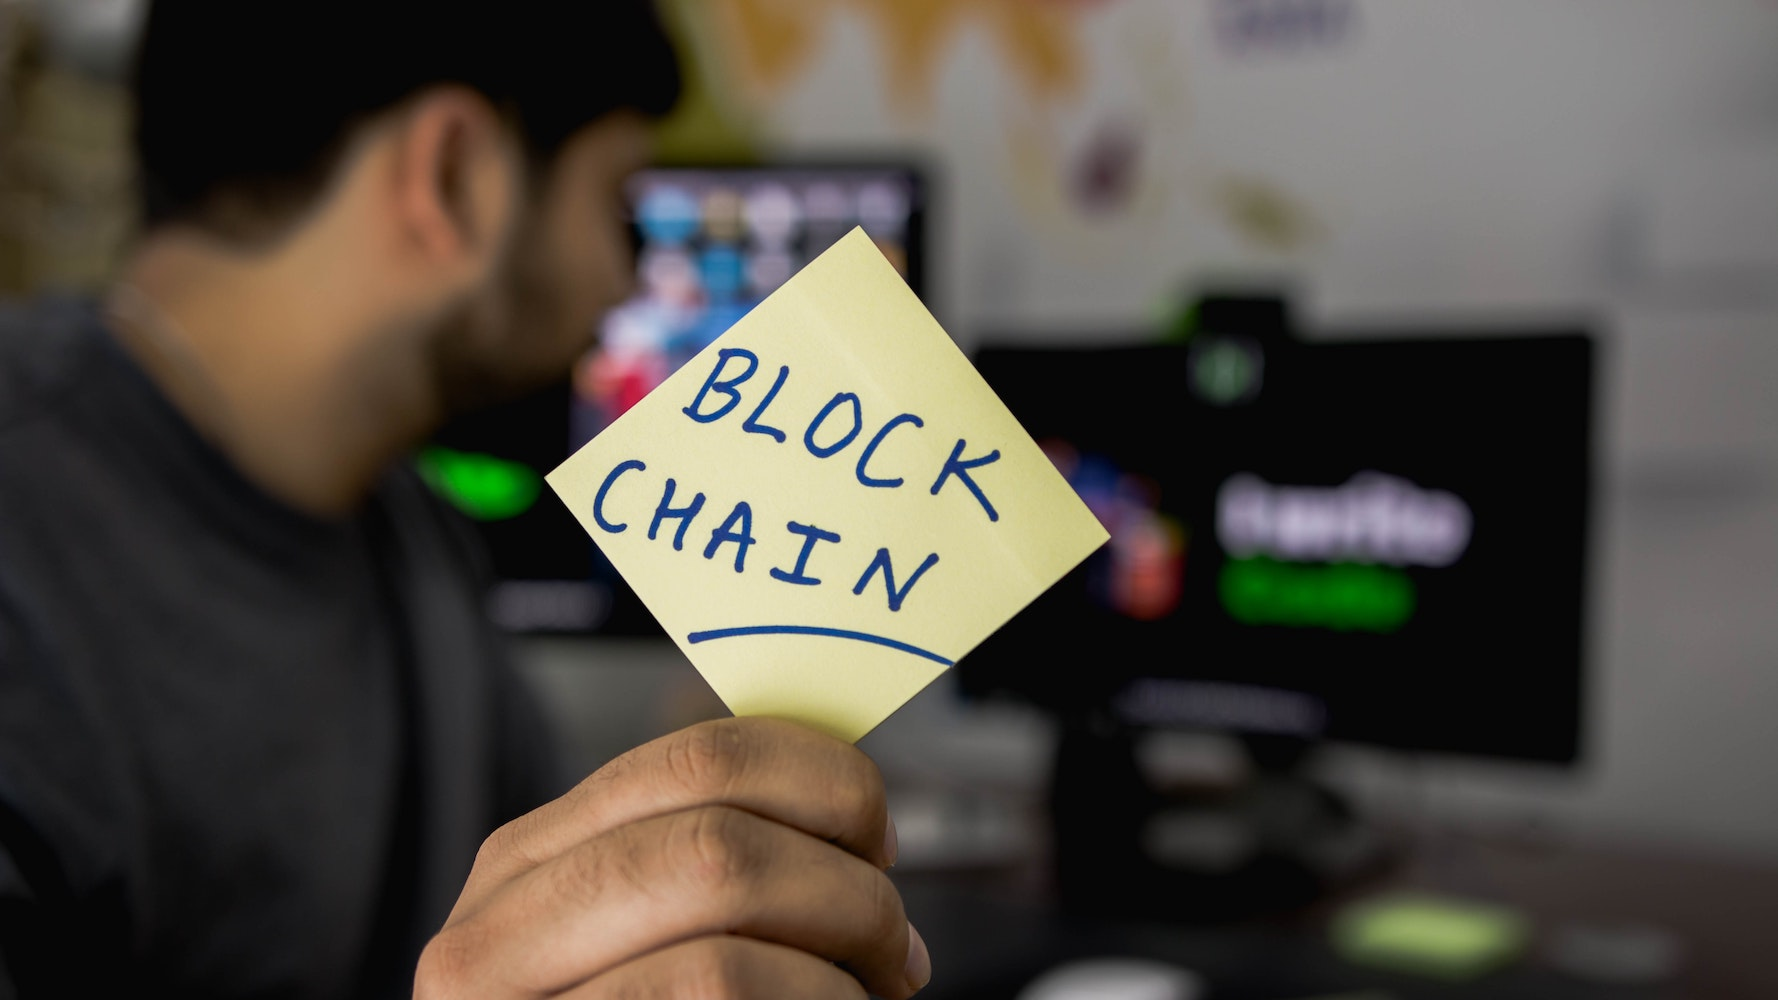 VeChain Analysis: What to expect from VET in 2020?